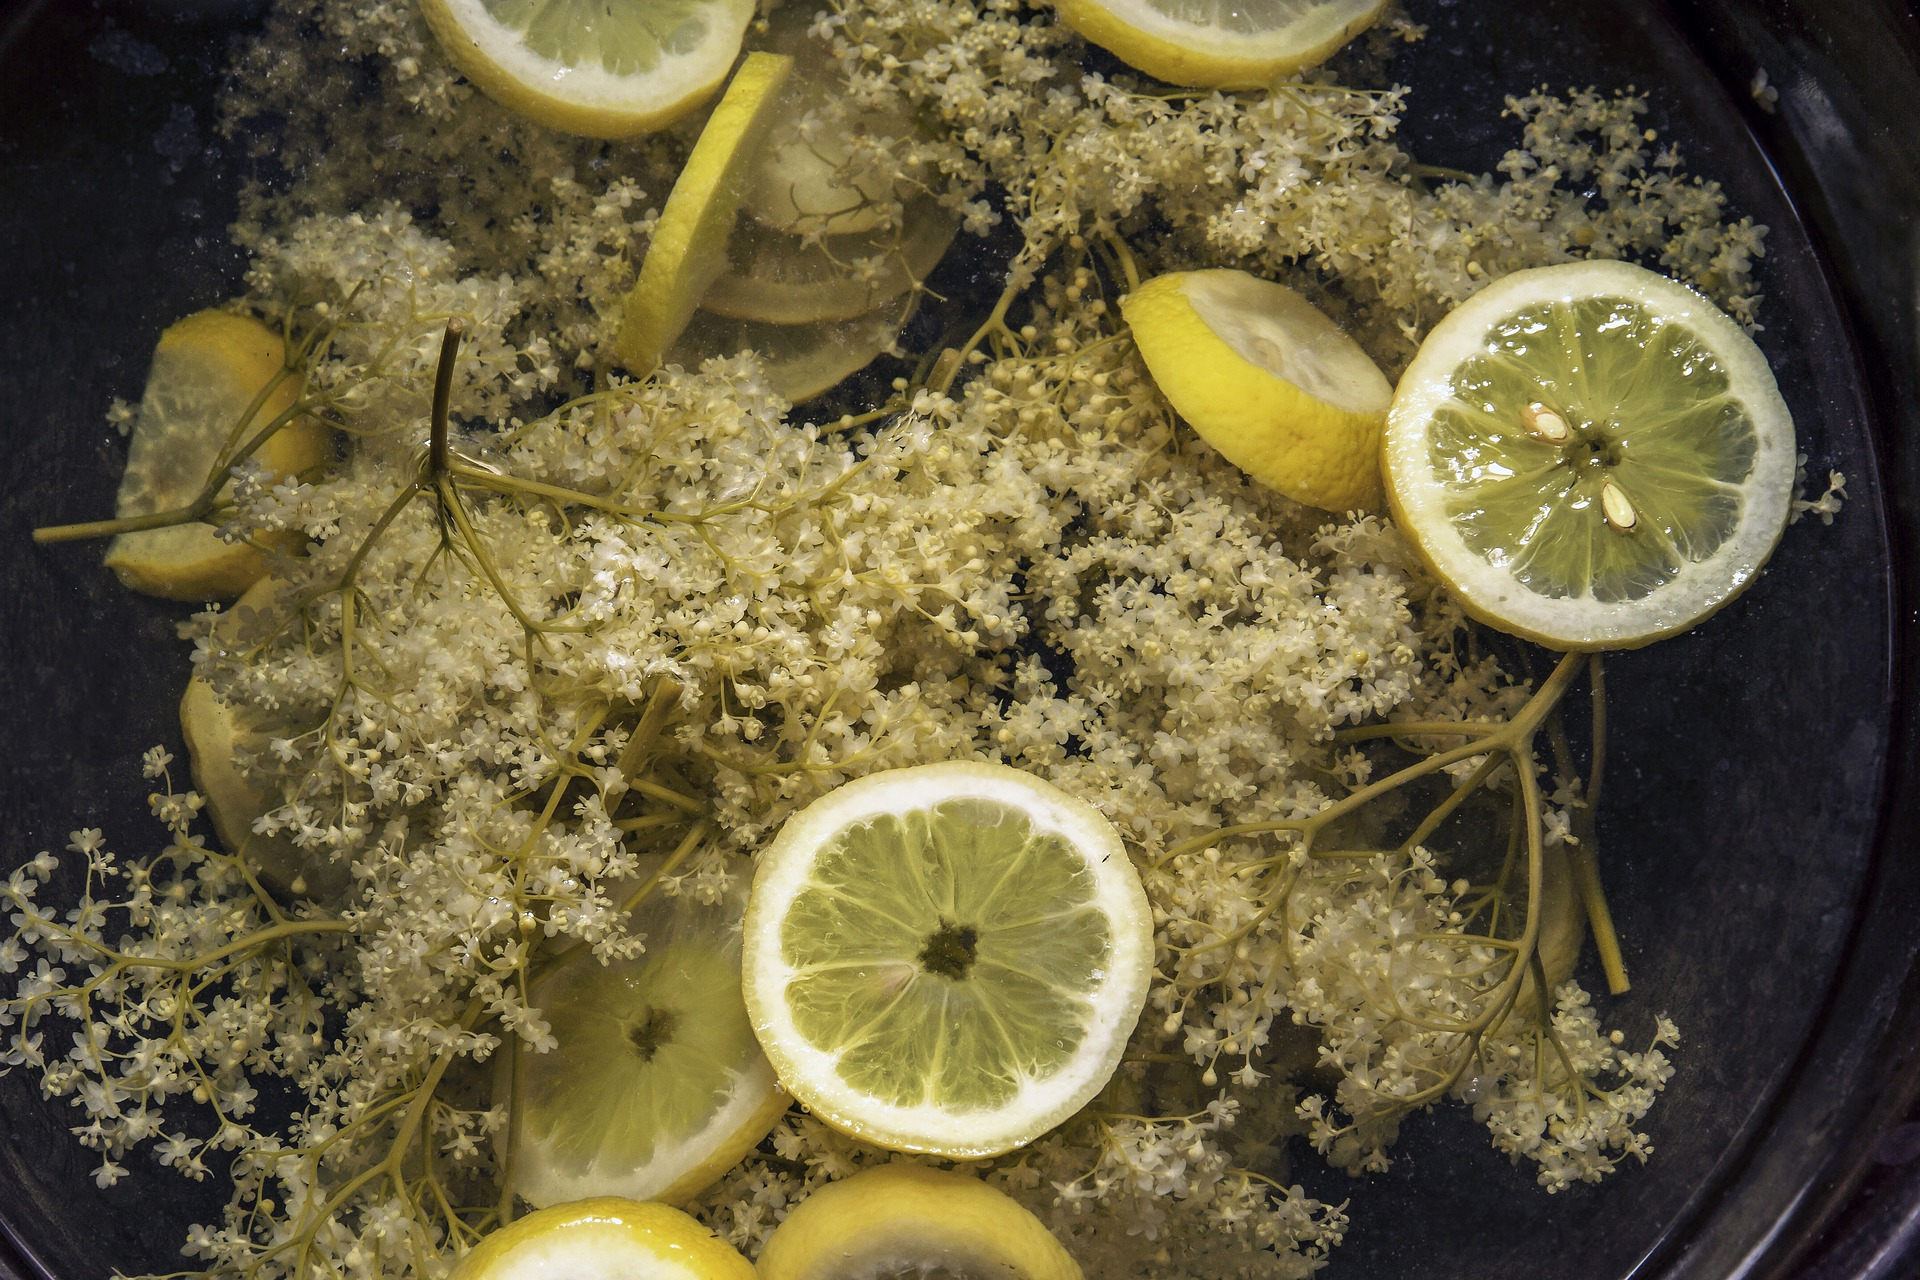 Elderflower cordial Catherine Mason